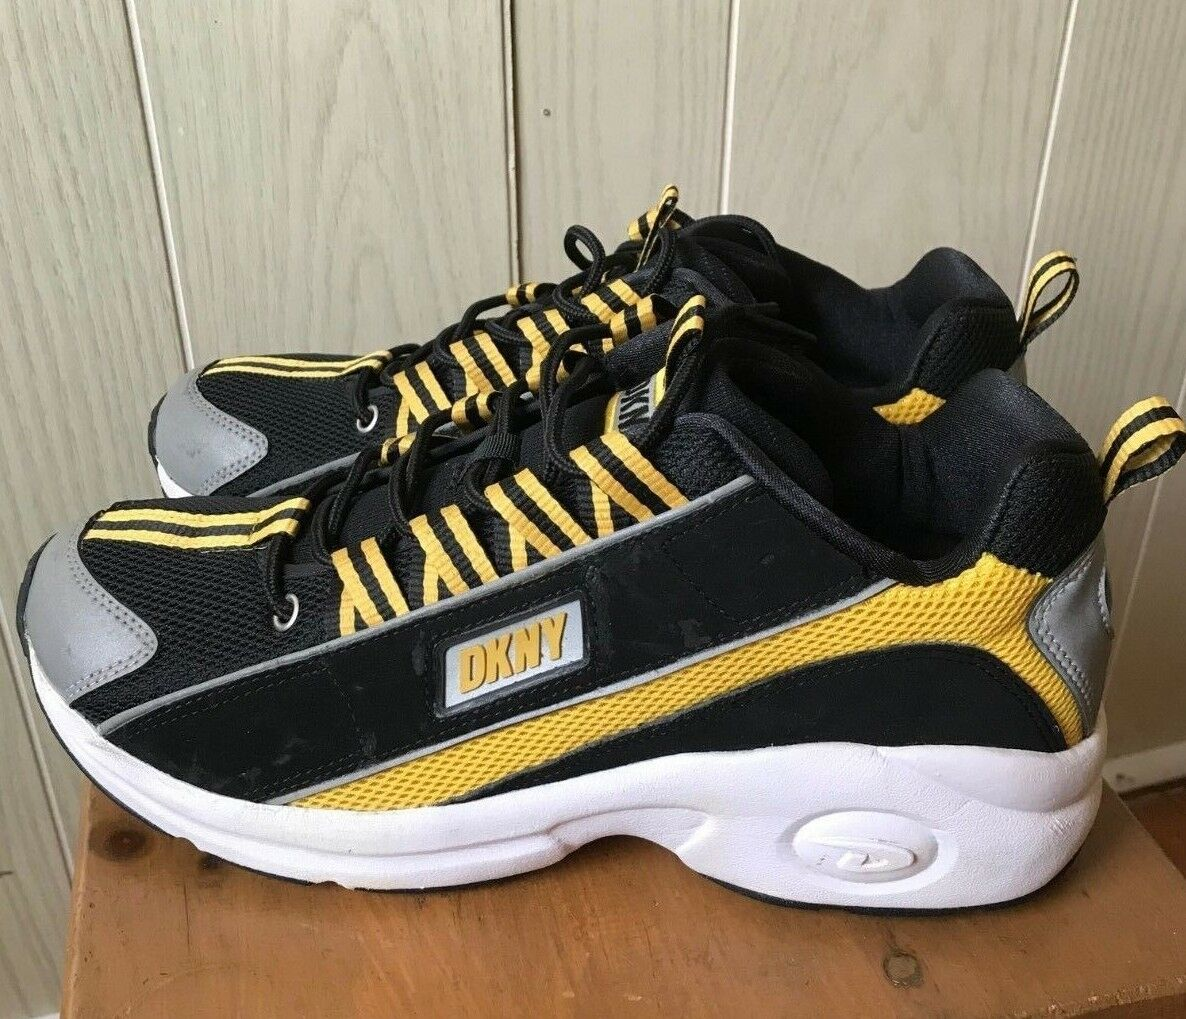 DKNY Millennium Era Sneakers. Awesome Dad shoes